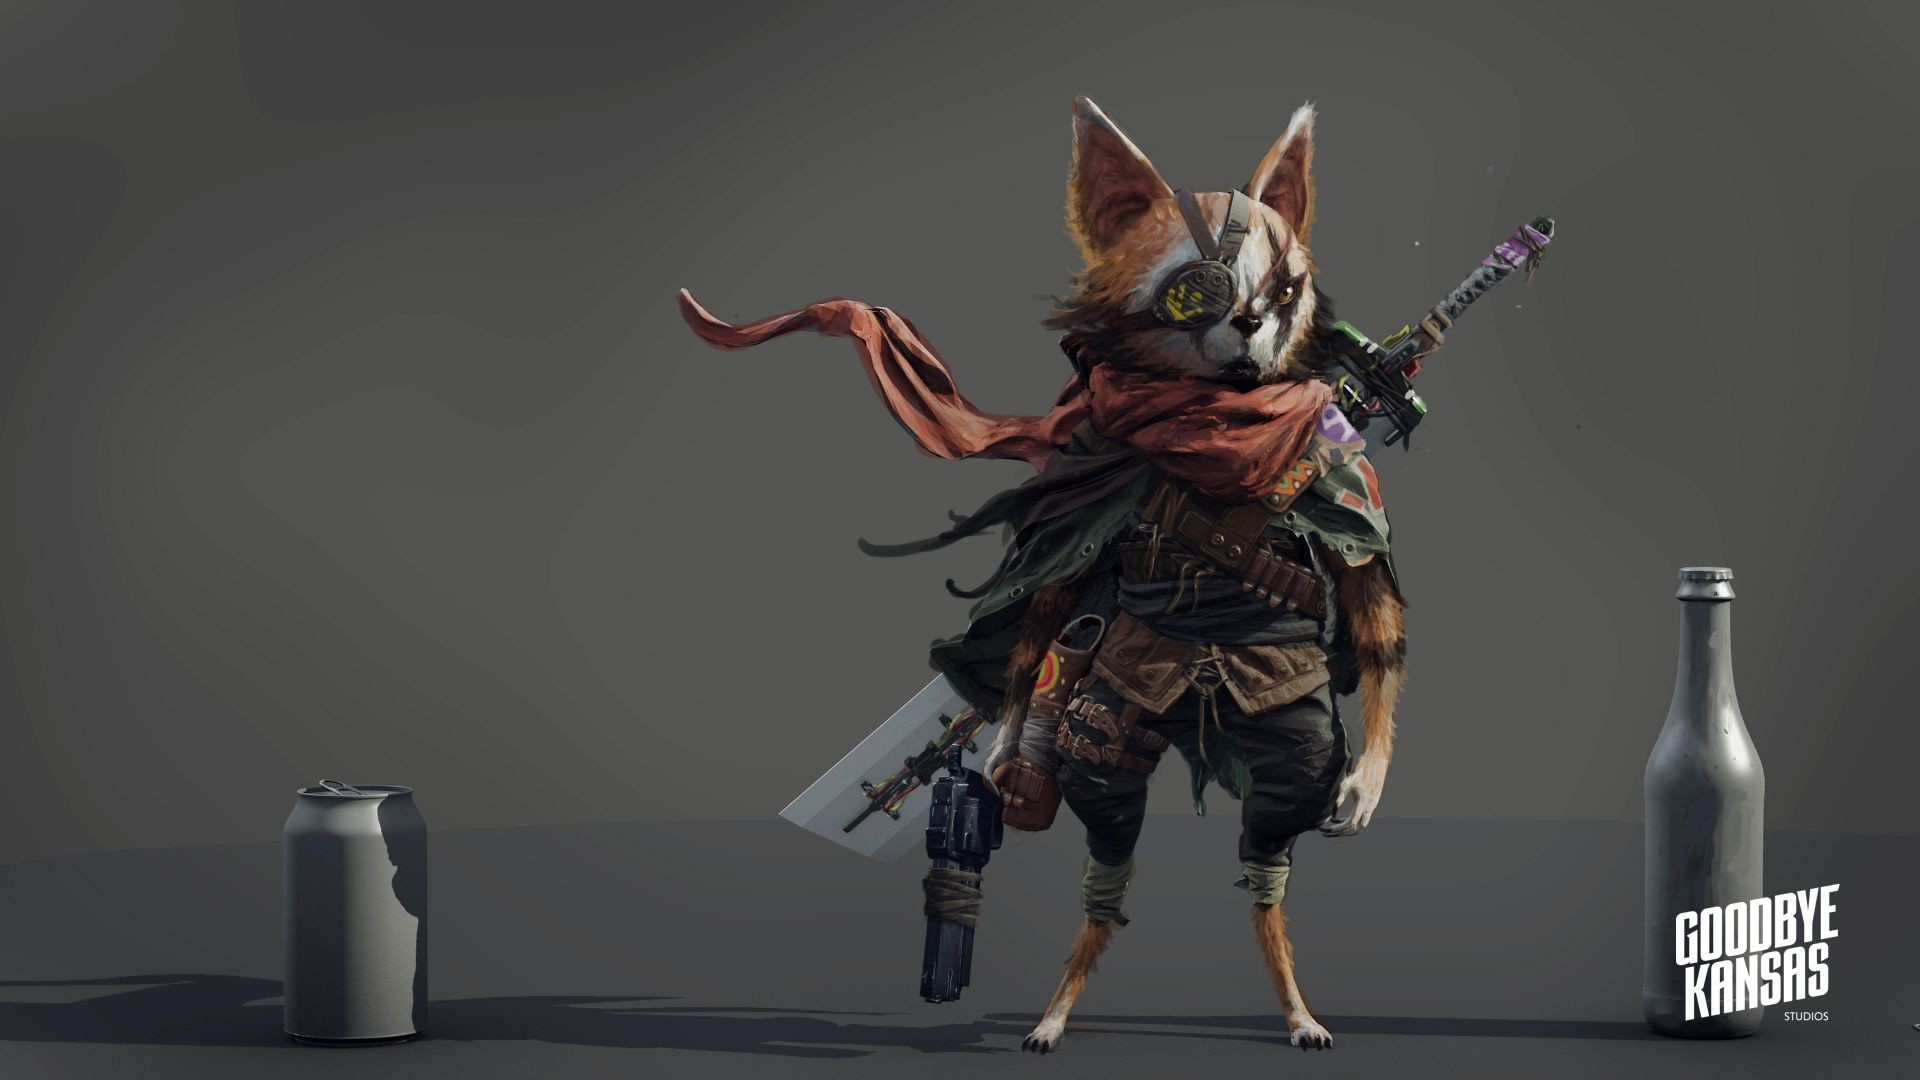 daniel-bystedt-biomutant-hero-concept-withcolormarkings-160321